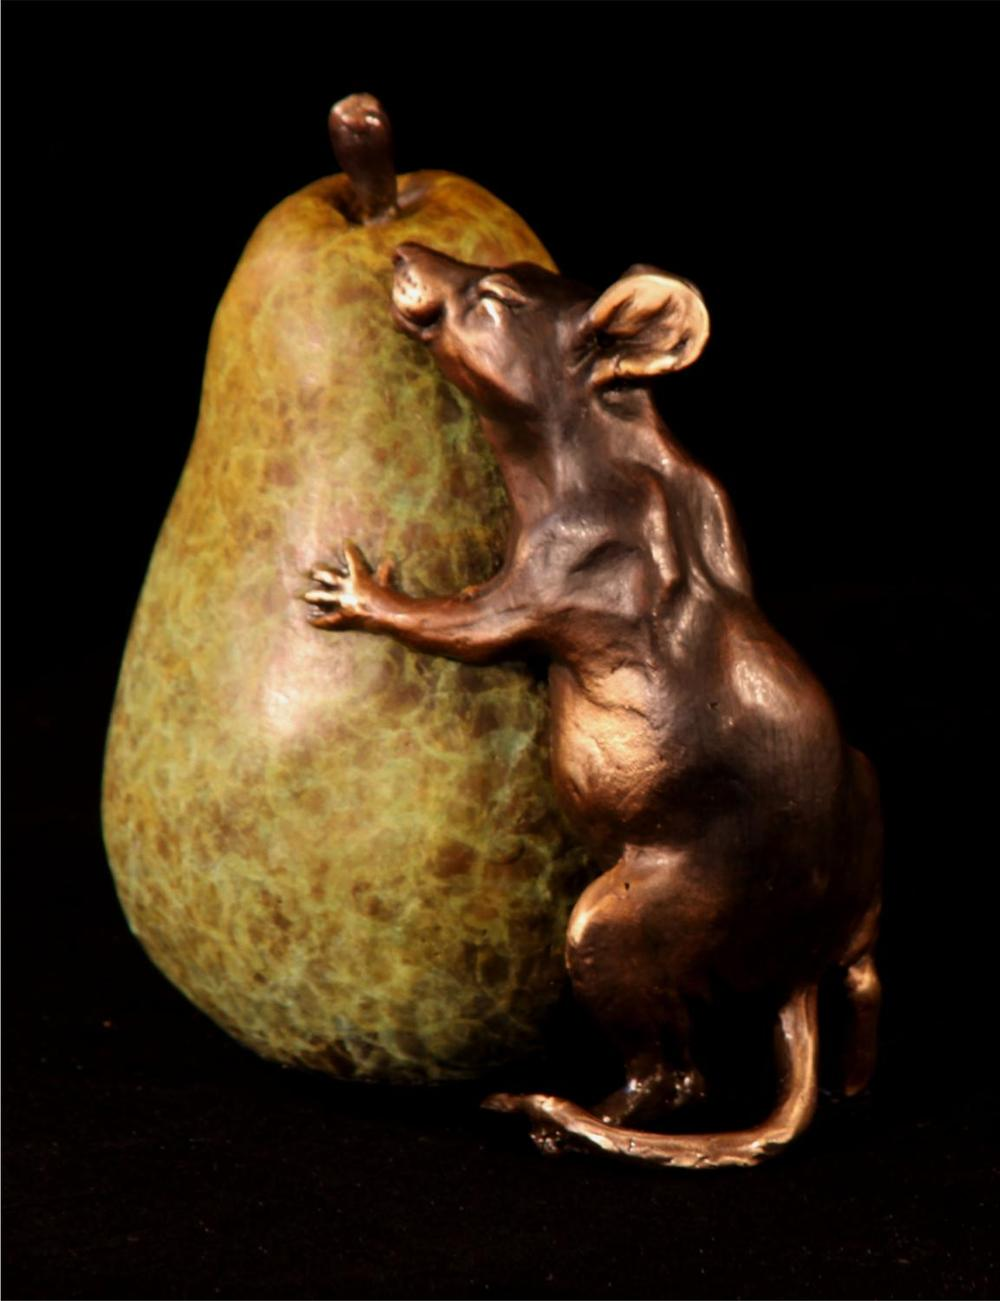 Pear Hug- Mouse/Pear